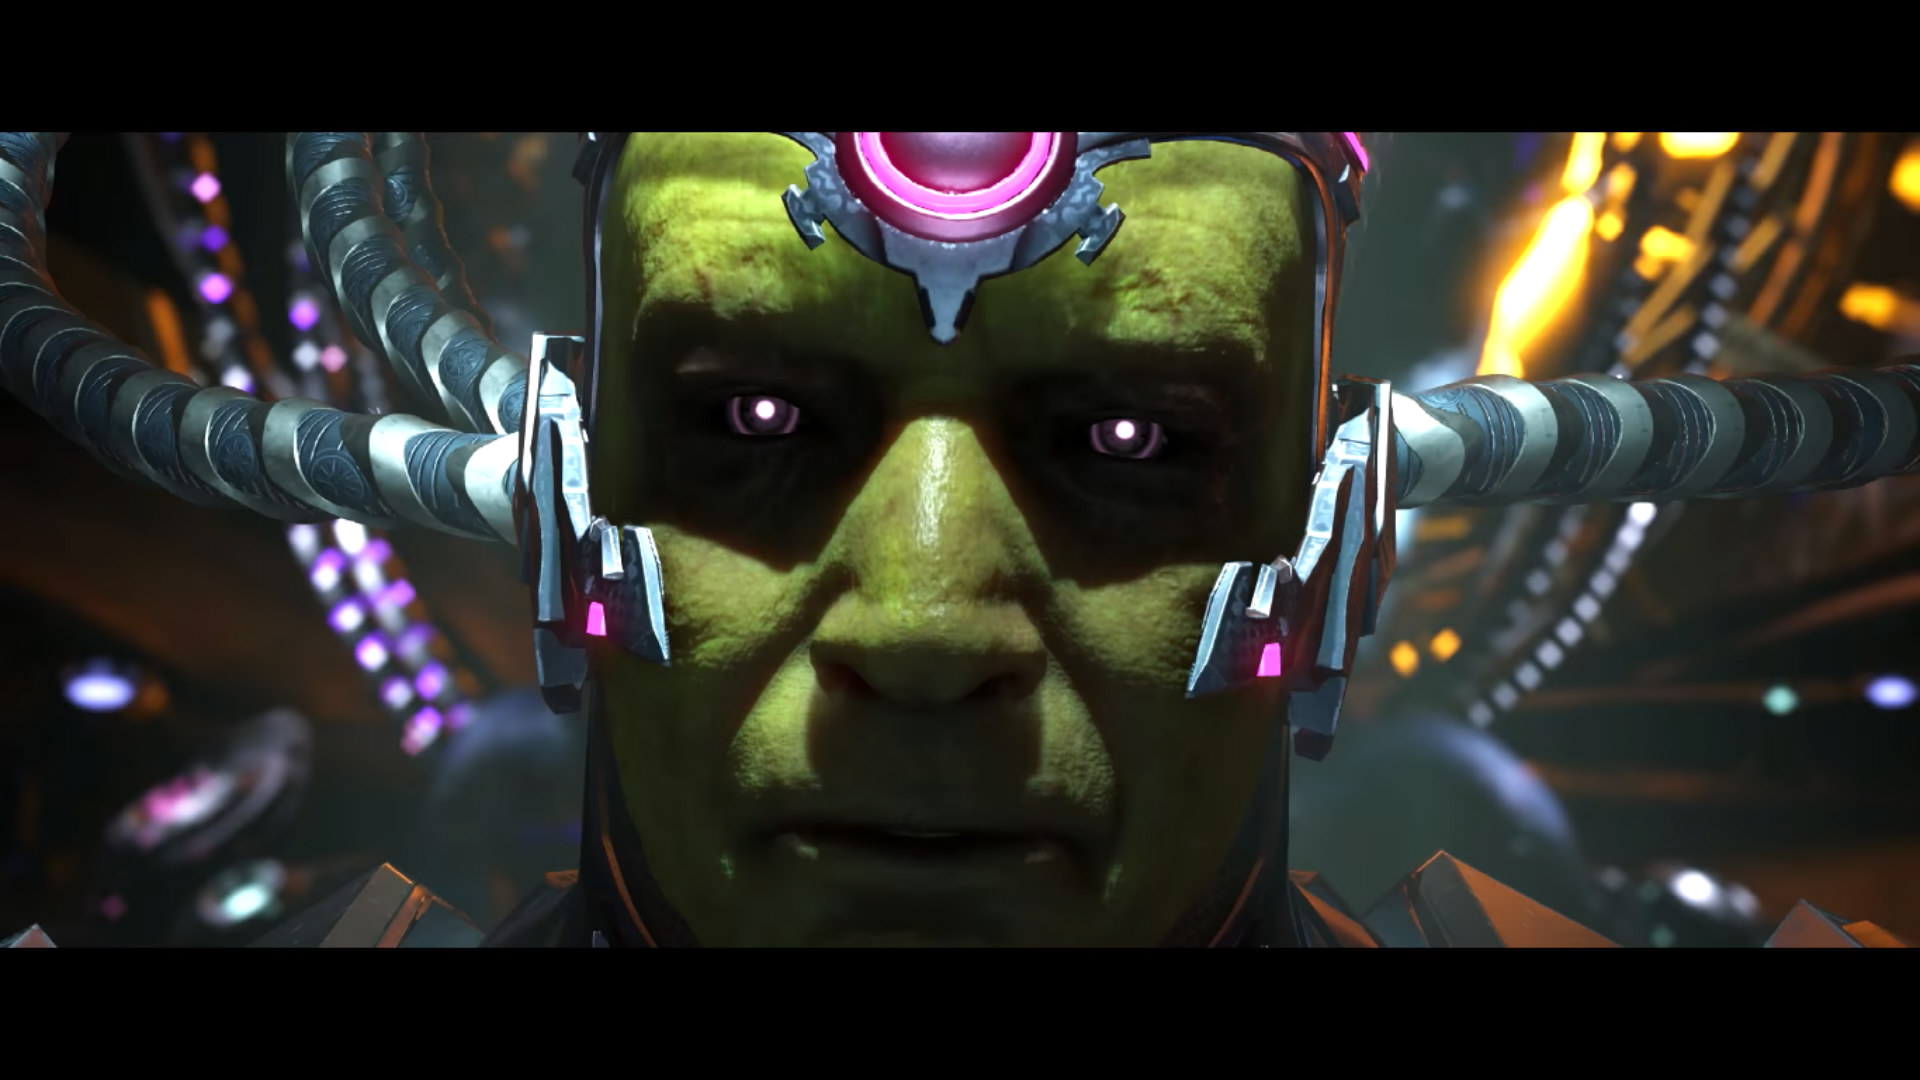 Brainiac is looking for the fight of his life in newest Injustice 2 story trailer screenshot